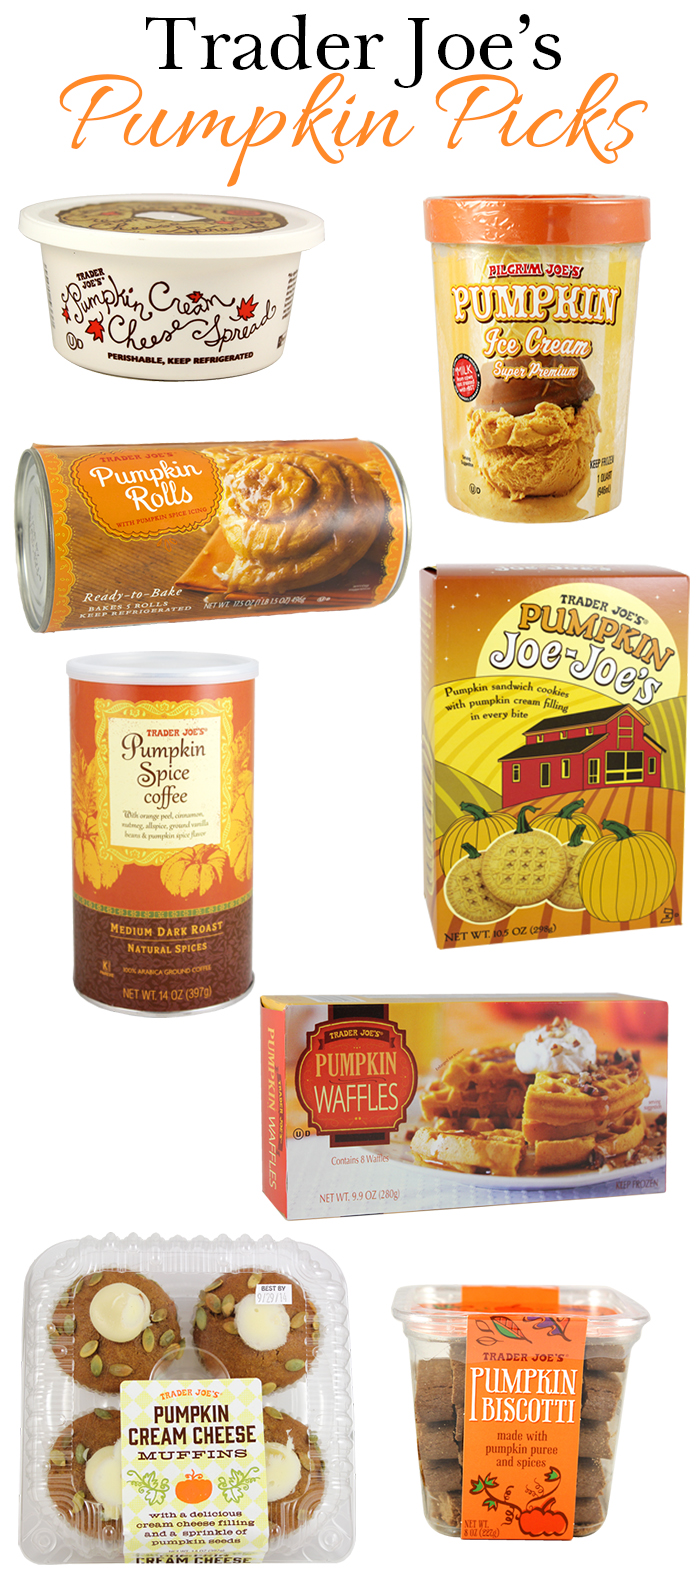 Trader Joe's Pumpkin Picks - DC Girl in Pearls